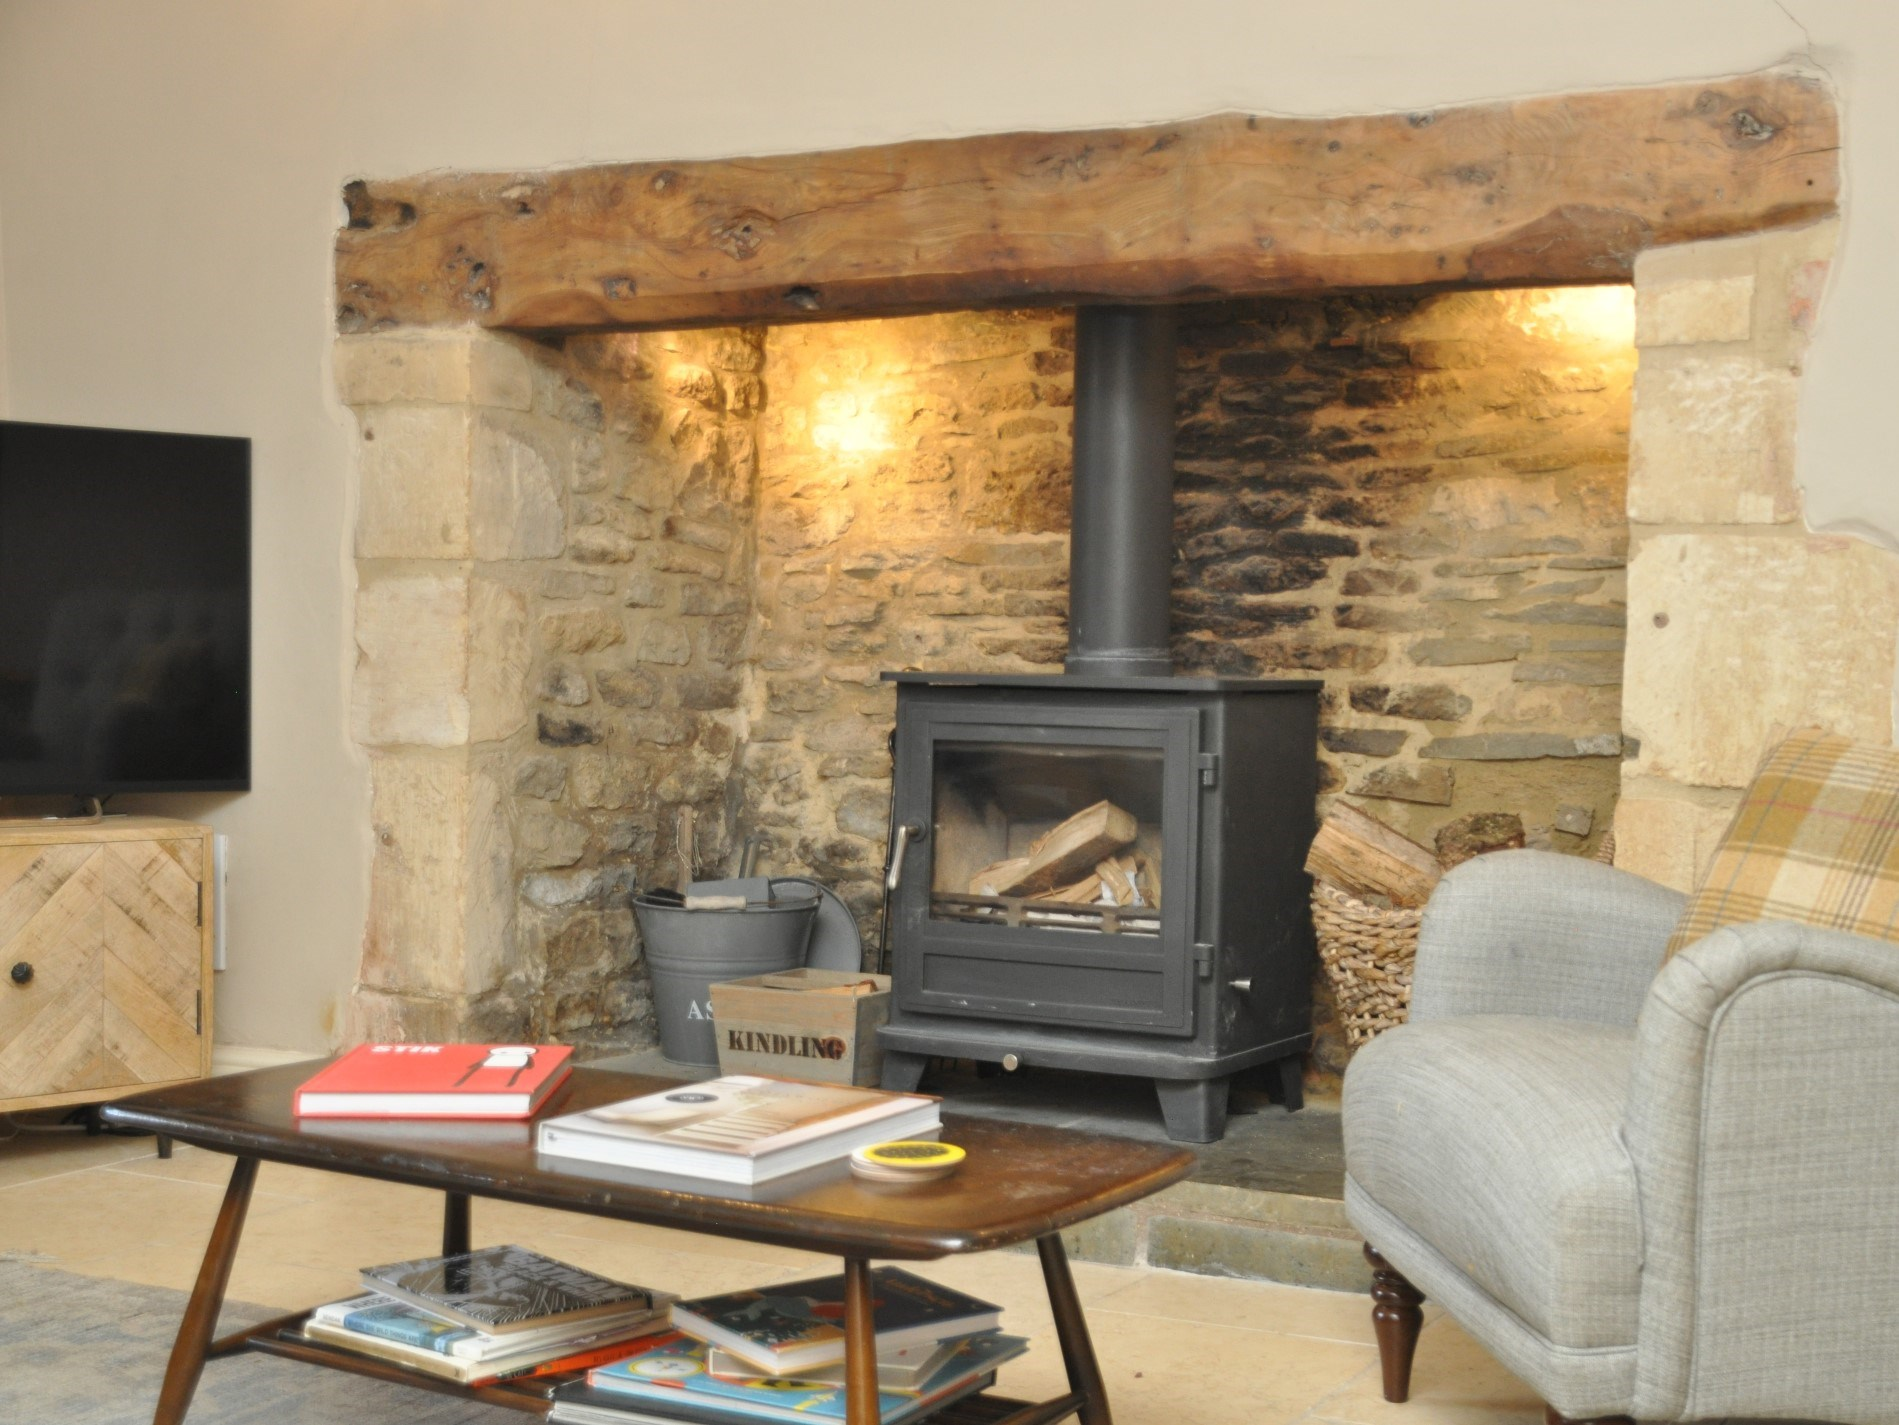 A wood burning stove compliments the ingle nook fire place